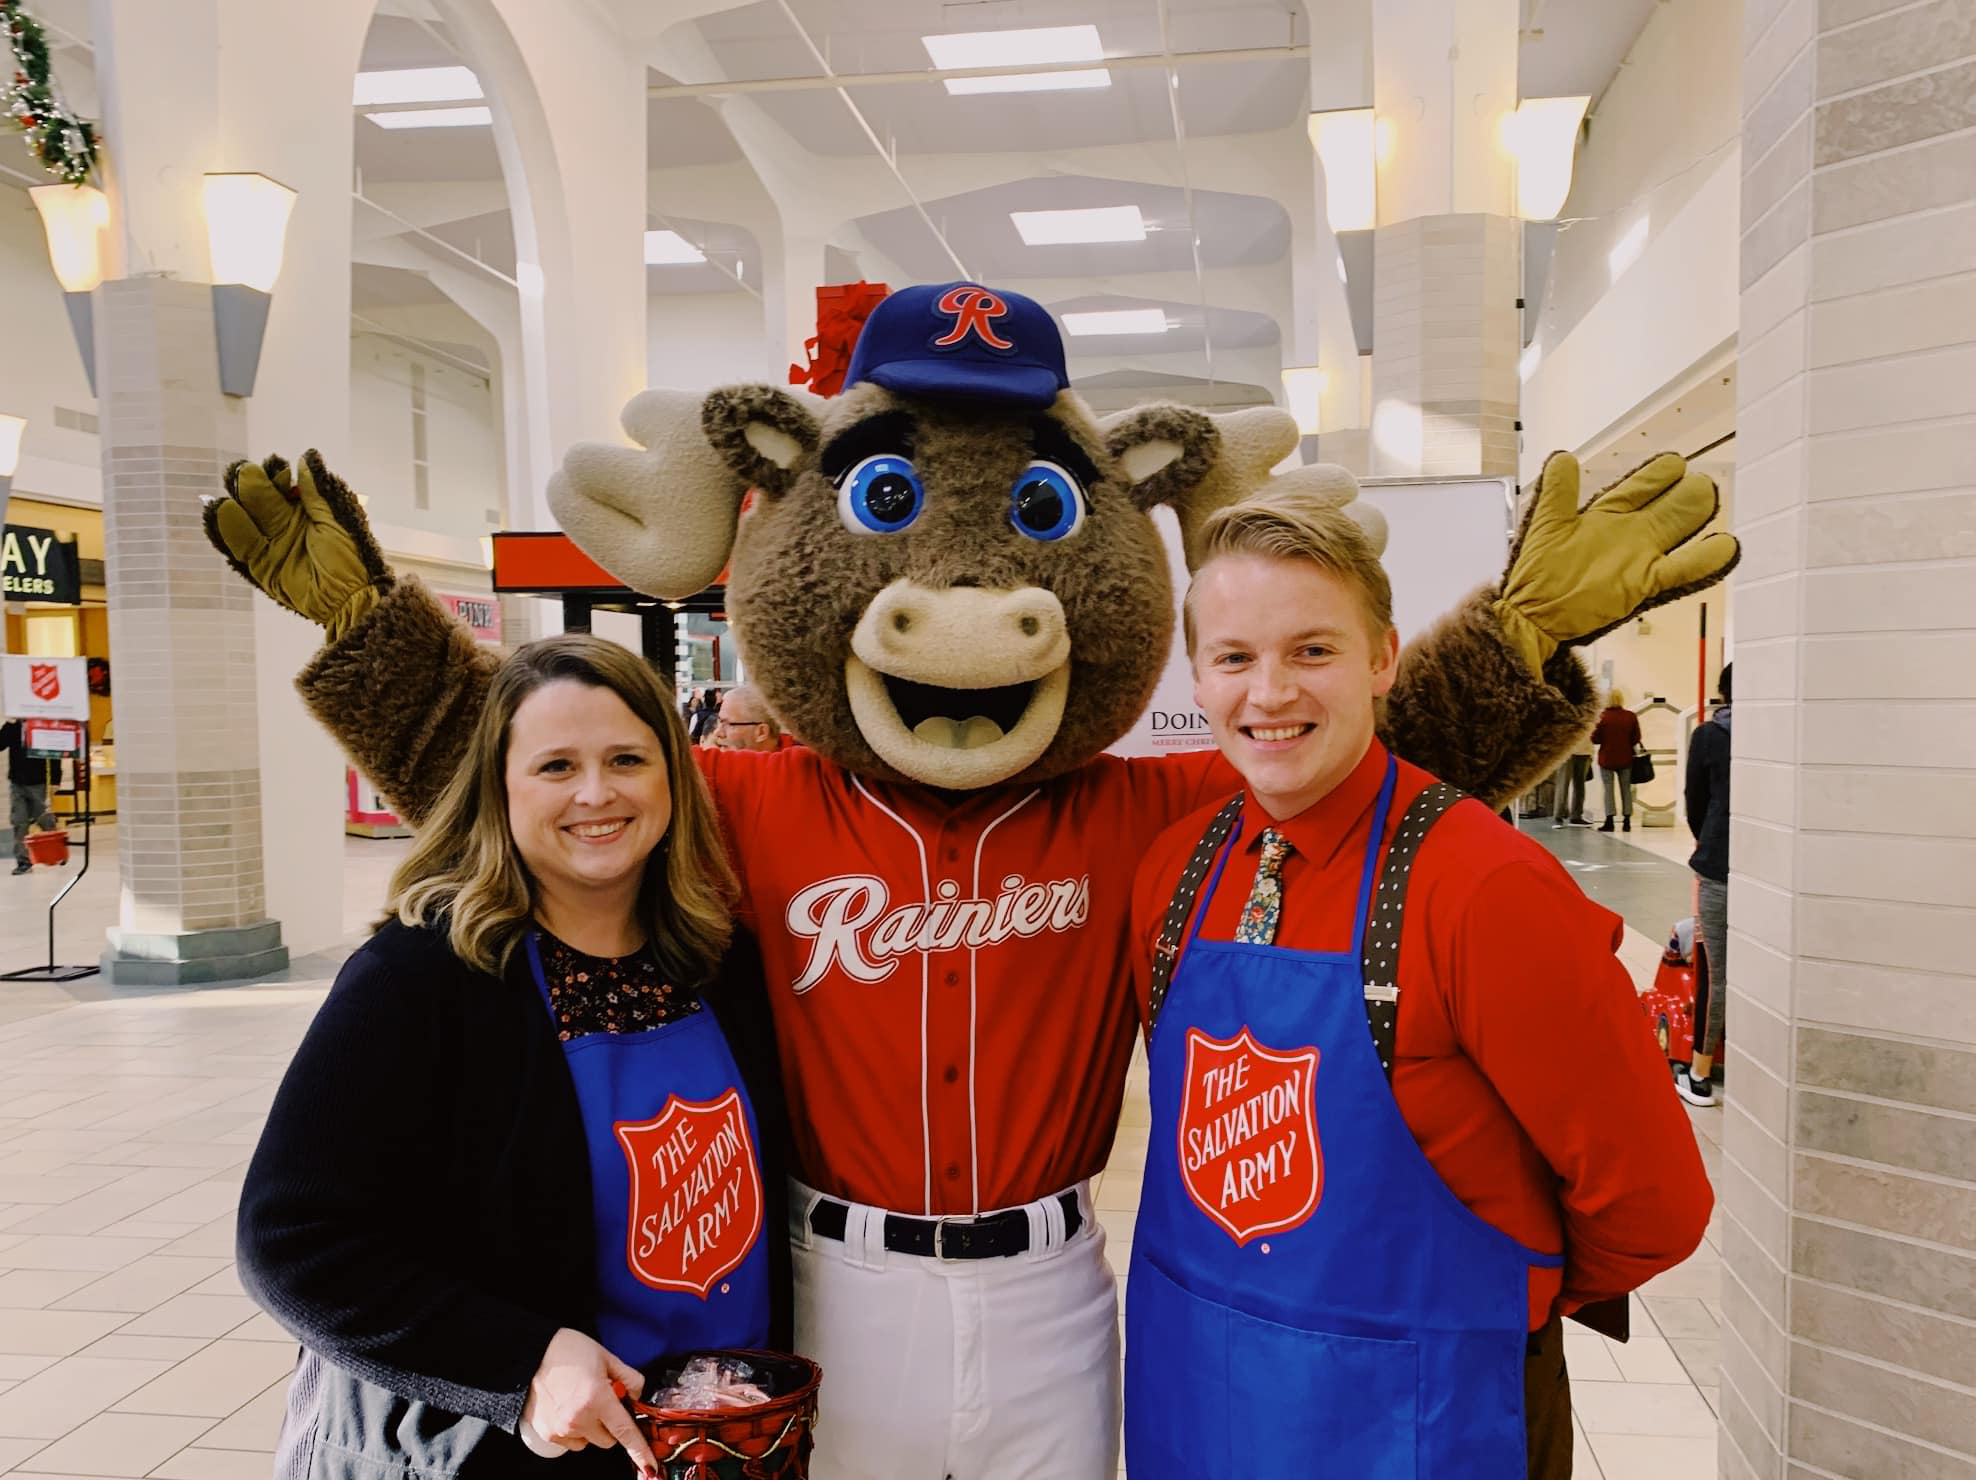 Shelley & Nic with Rhubarb at the Salvation Army's Celebrity Bell-Ringing event